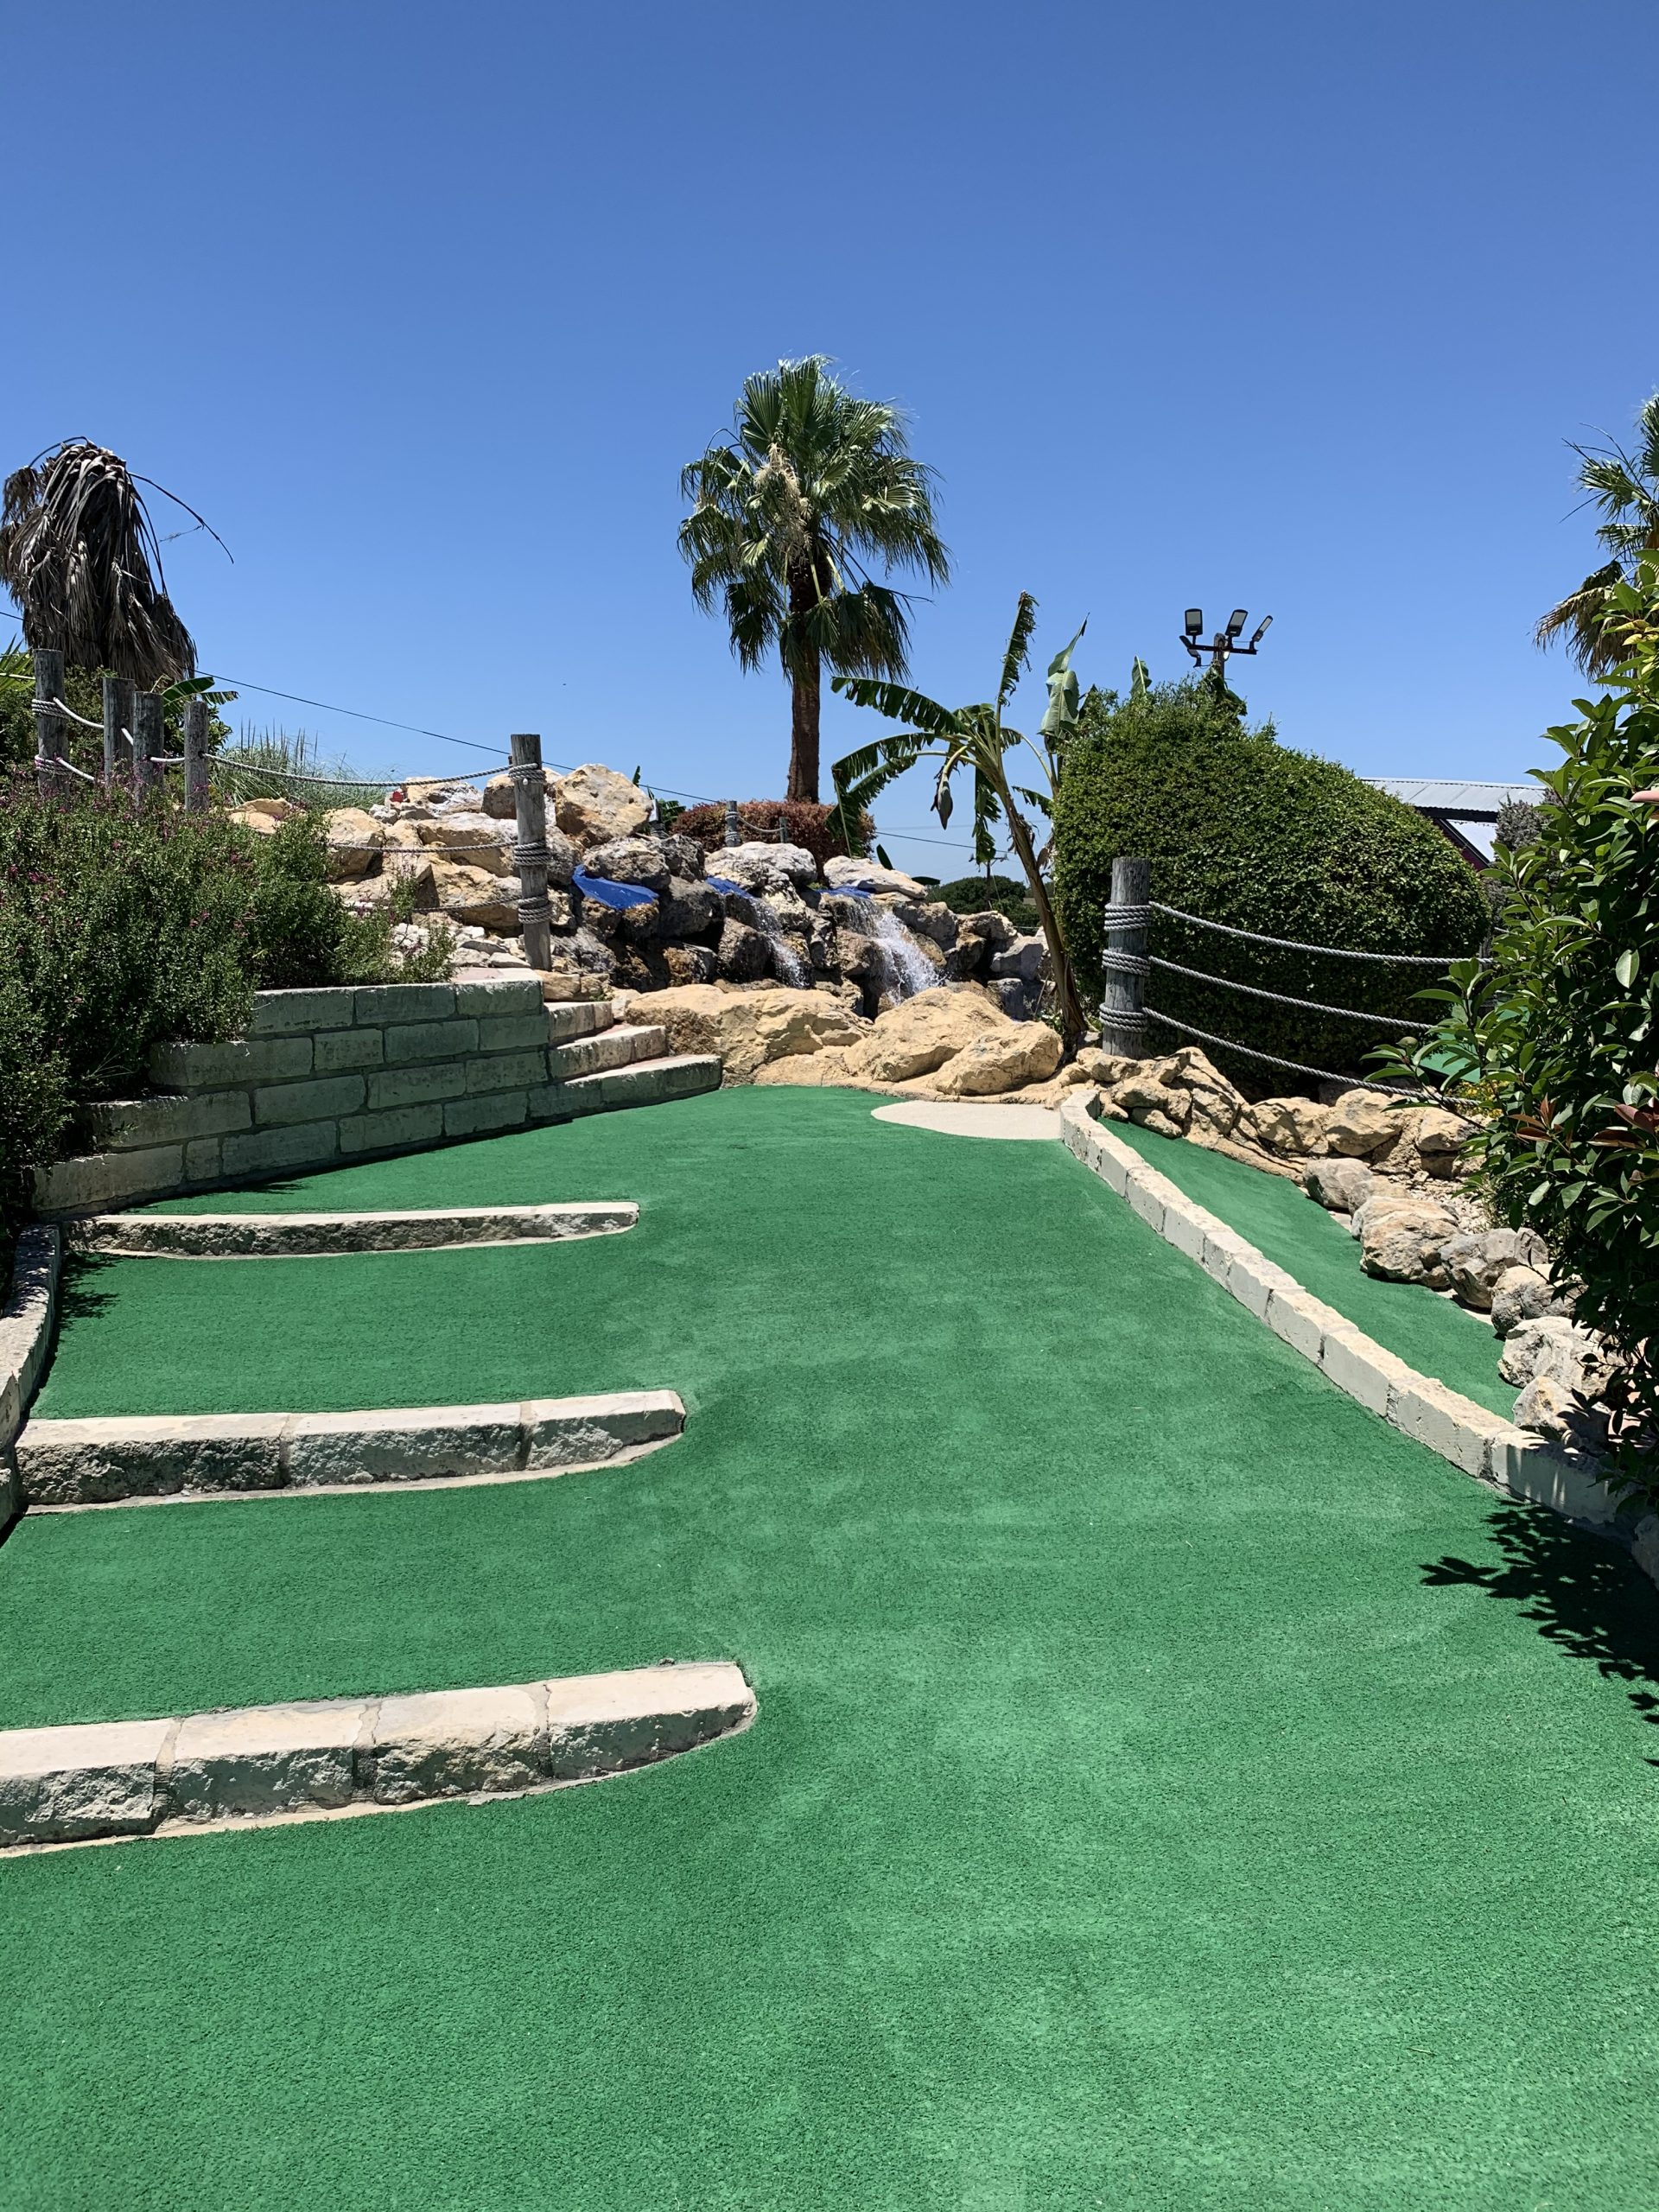 embassy mini golf course greens